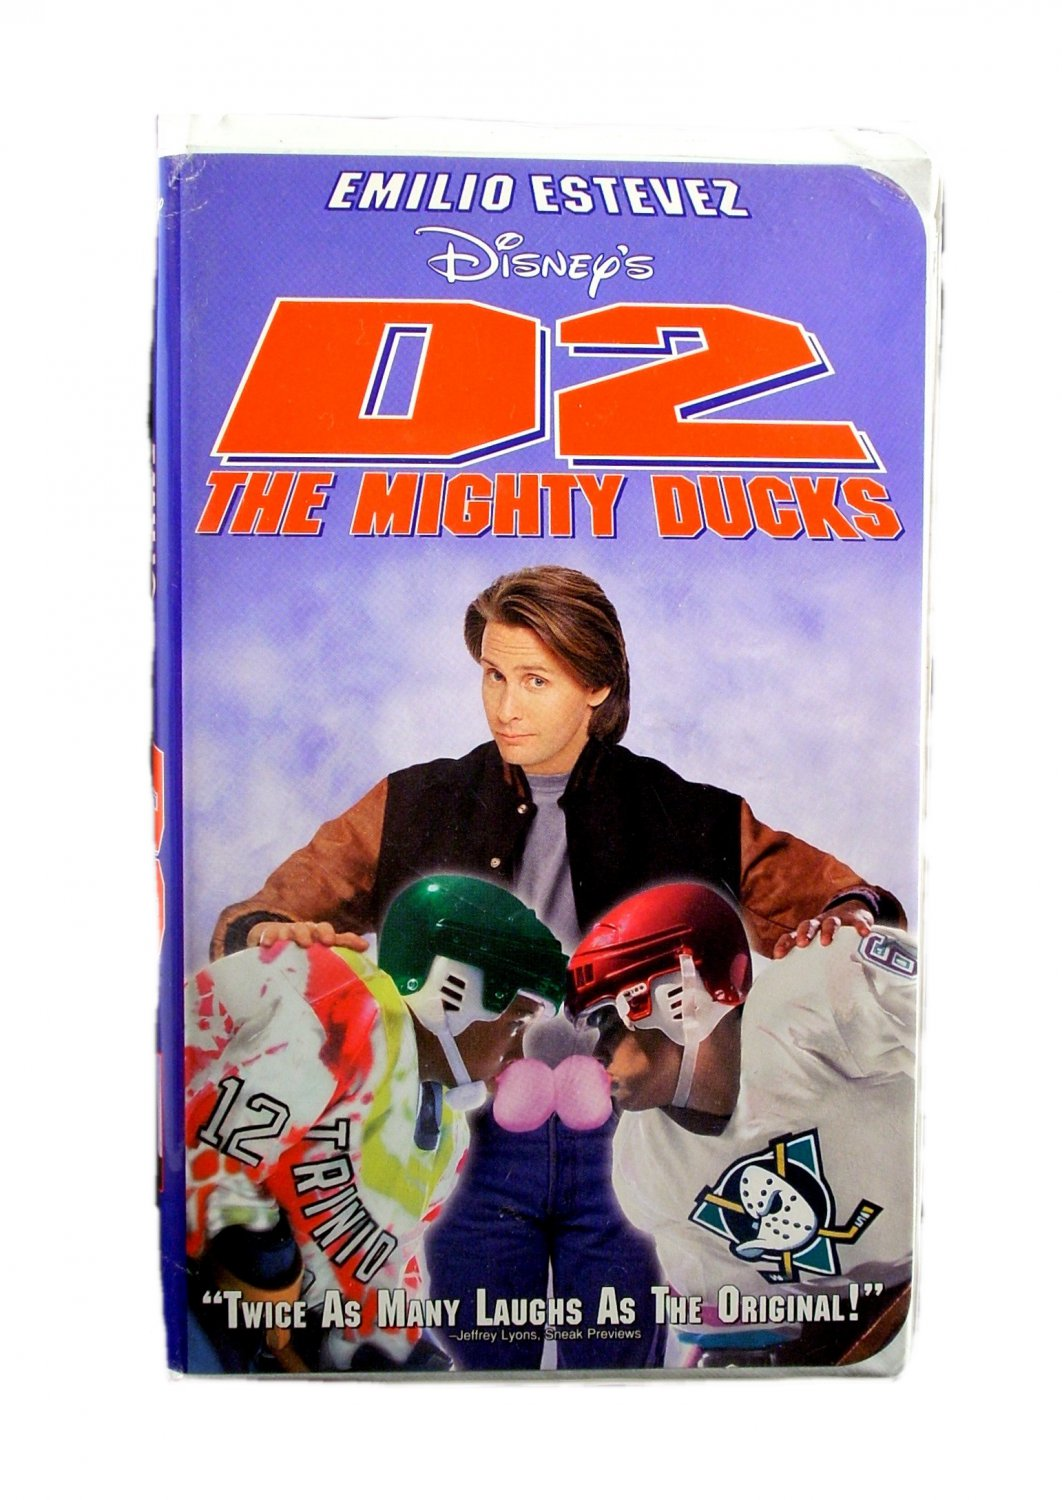 Disney's D2 The Mighty Ducks VHS 1994